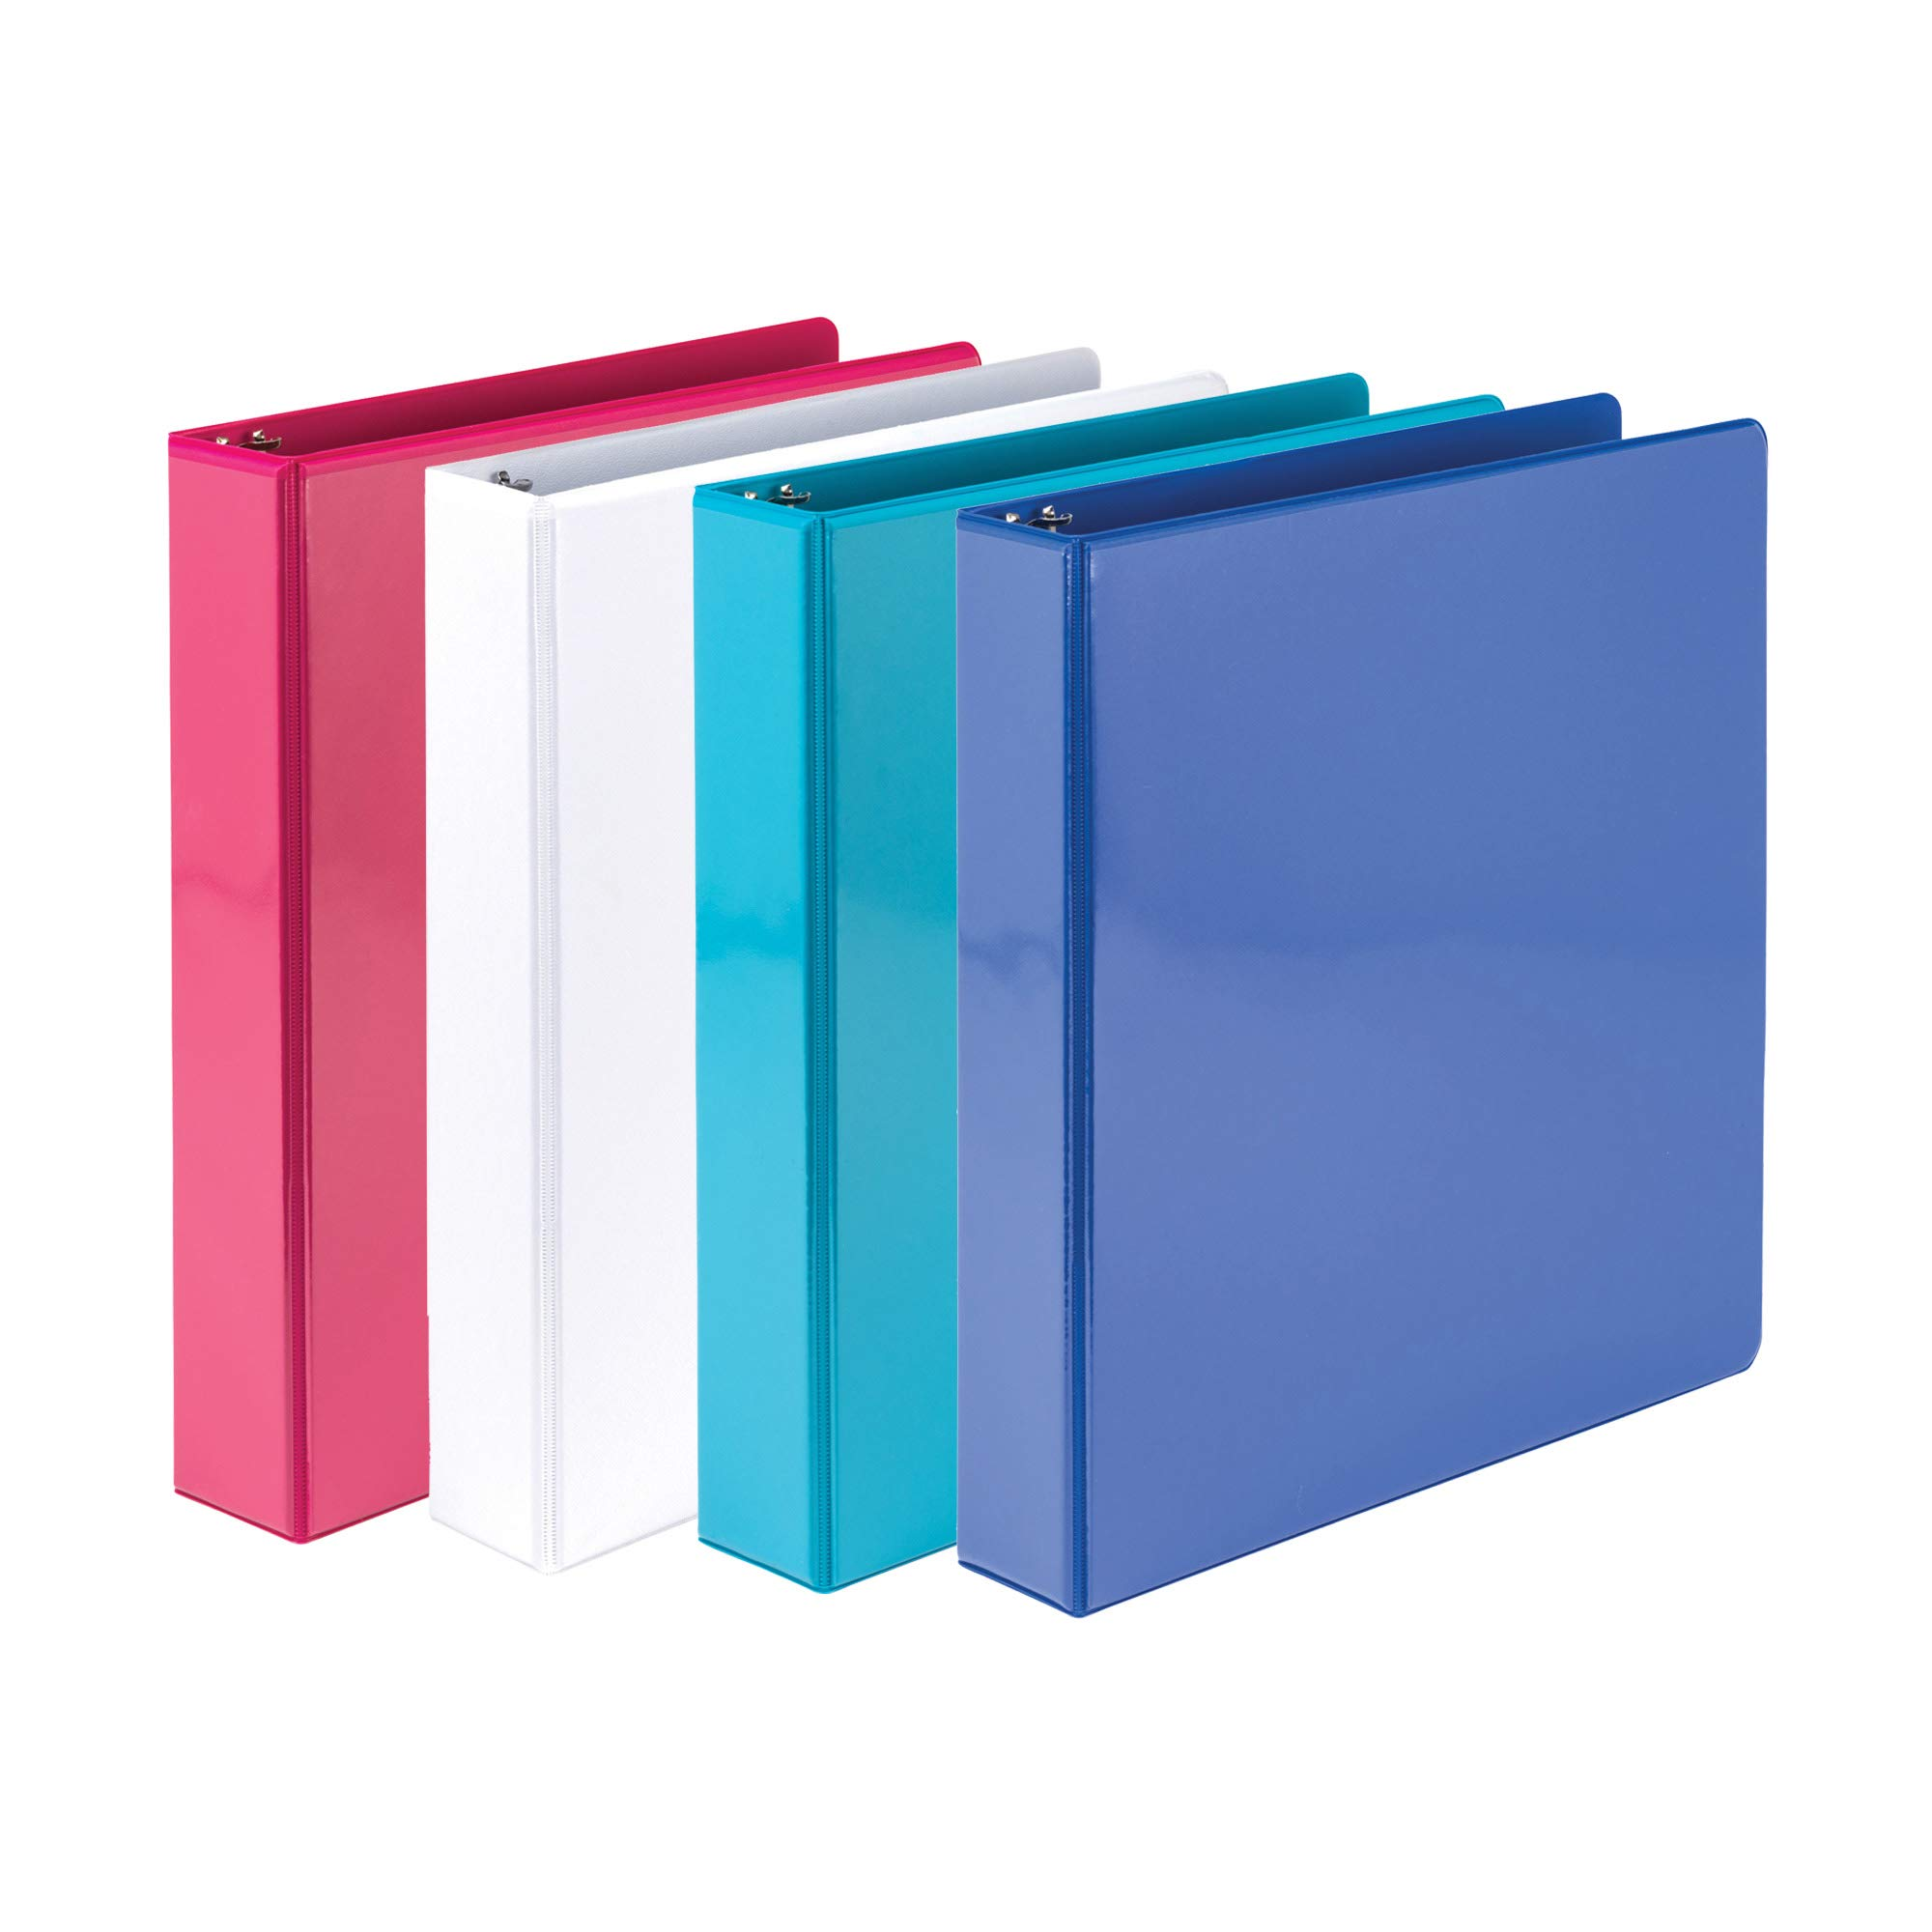 Samsill 1.5 Inch Round Ring Binders/Customizable Clear View Binder/Bulk Binder 4 Pack / 3 Ring Binder / 1.5 Inch Binder/Fashion Color Assortment by Samsill